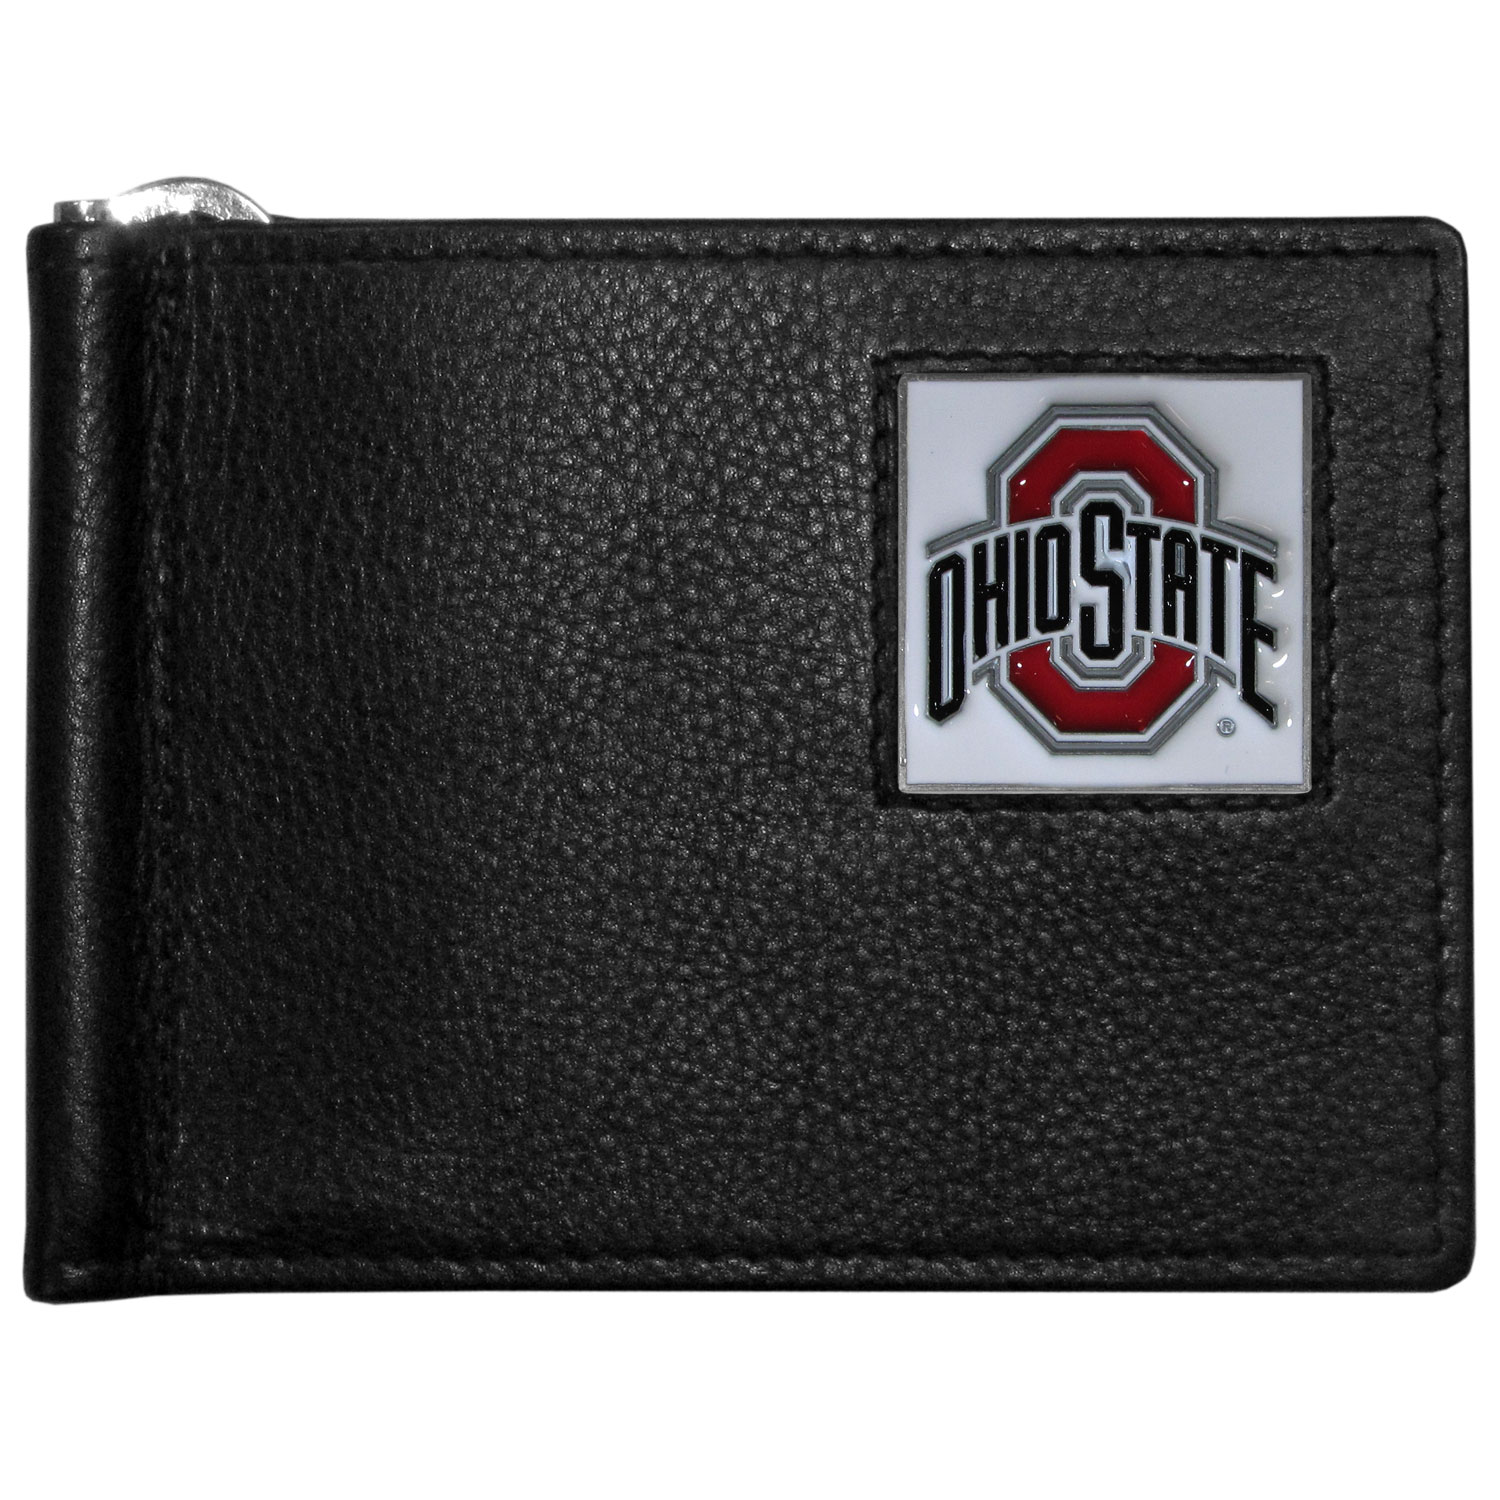 Ohio St. Buckeyes Leather Bill Clip Wallet - This cool new style wallet features an inner, metal bill clip that lips up for easy access. The super slim wallet holds tons of stuff with ample pockets, credit card slots & windowed ID slot. The wallet is made of genuine fine grain leather and it finished with a metal Ohio St. Buckeyes emblem. The wallet is shipped in gift box packaging.